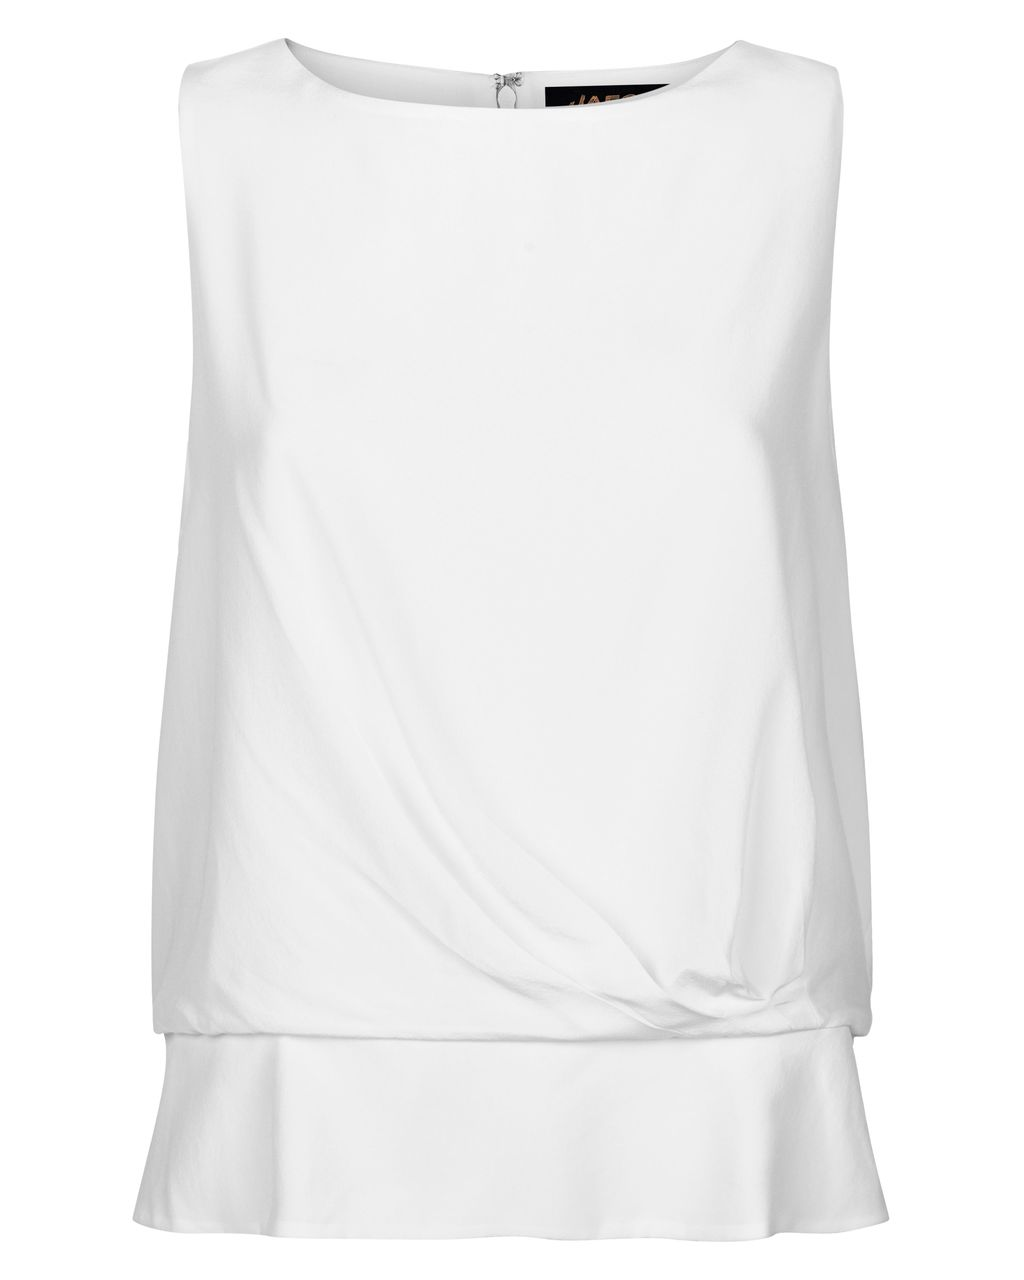 Silk Draped Peplum Top, White - neckline: round neck; pattern: plain; sleeve style: sleeveless; waist detail: peplum waist detail; predominant colour: white; occasions: casual; length: standard; style: top; fibres: silk - 100%; fit: body skimming; sleeve length: sleeveless; texture group: silky - light; pattern type: fabric; season: s/s 2016; wardrobe: basic